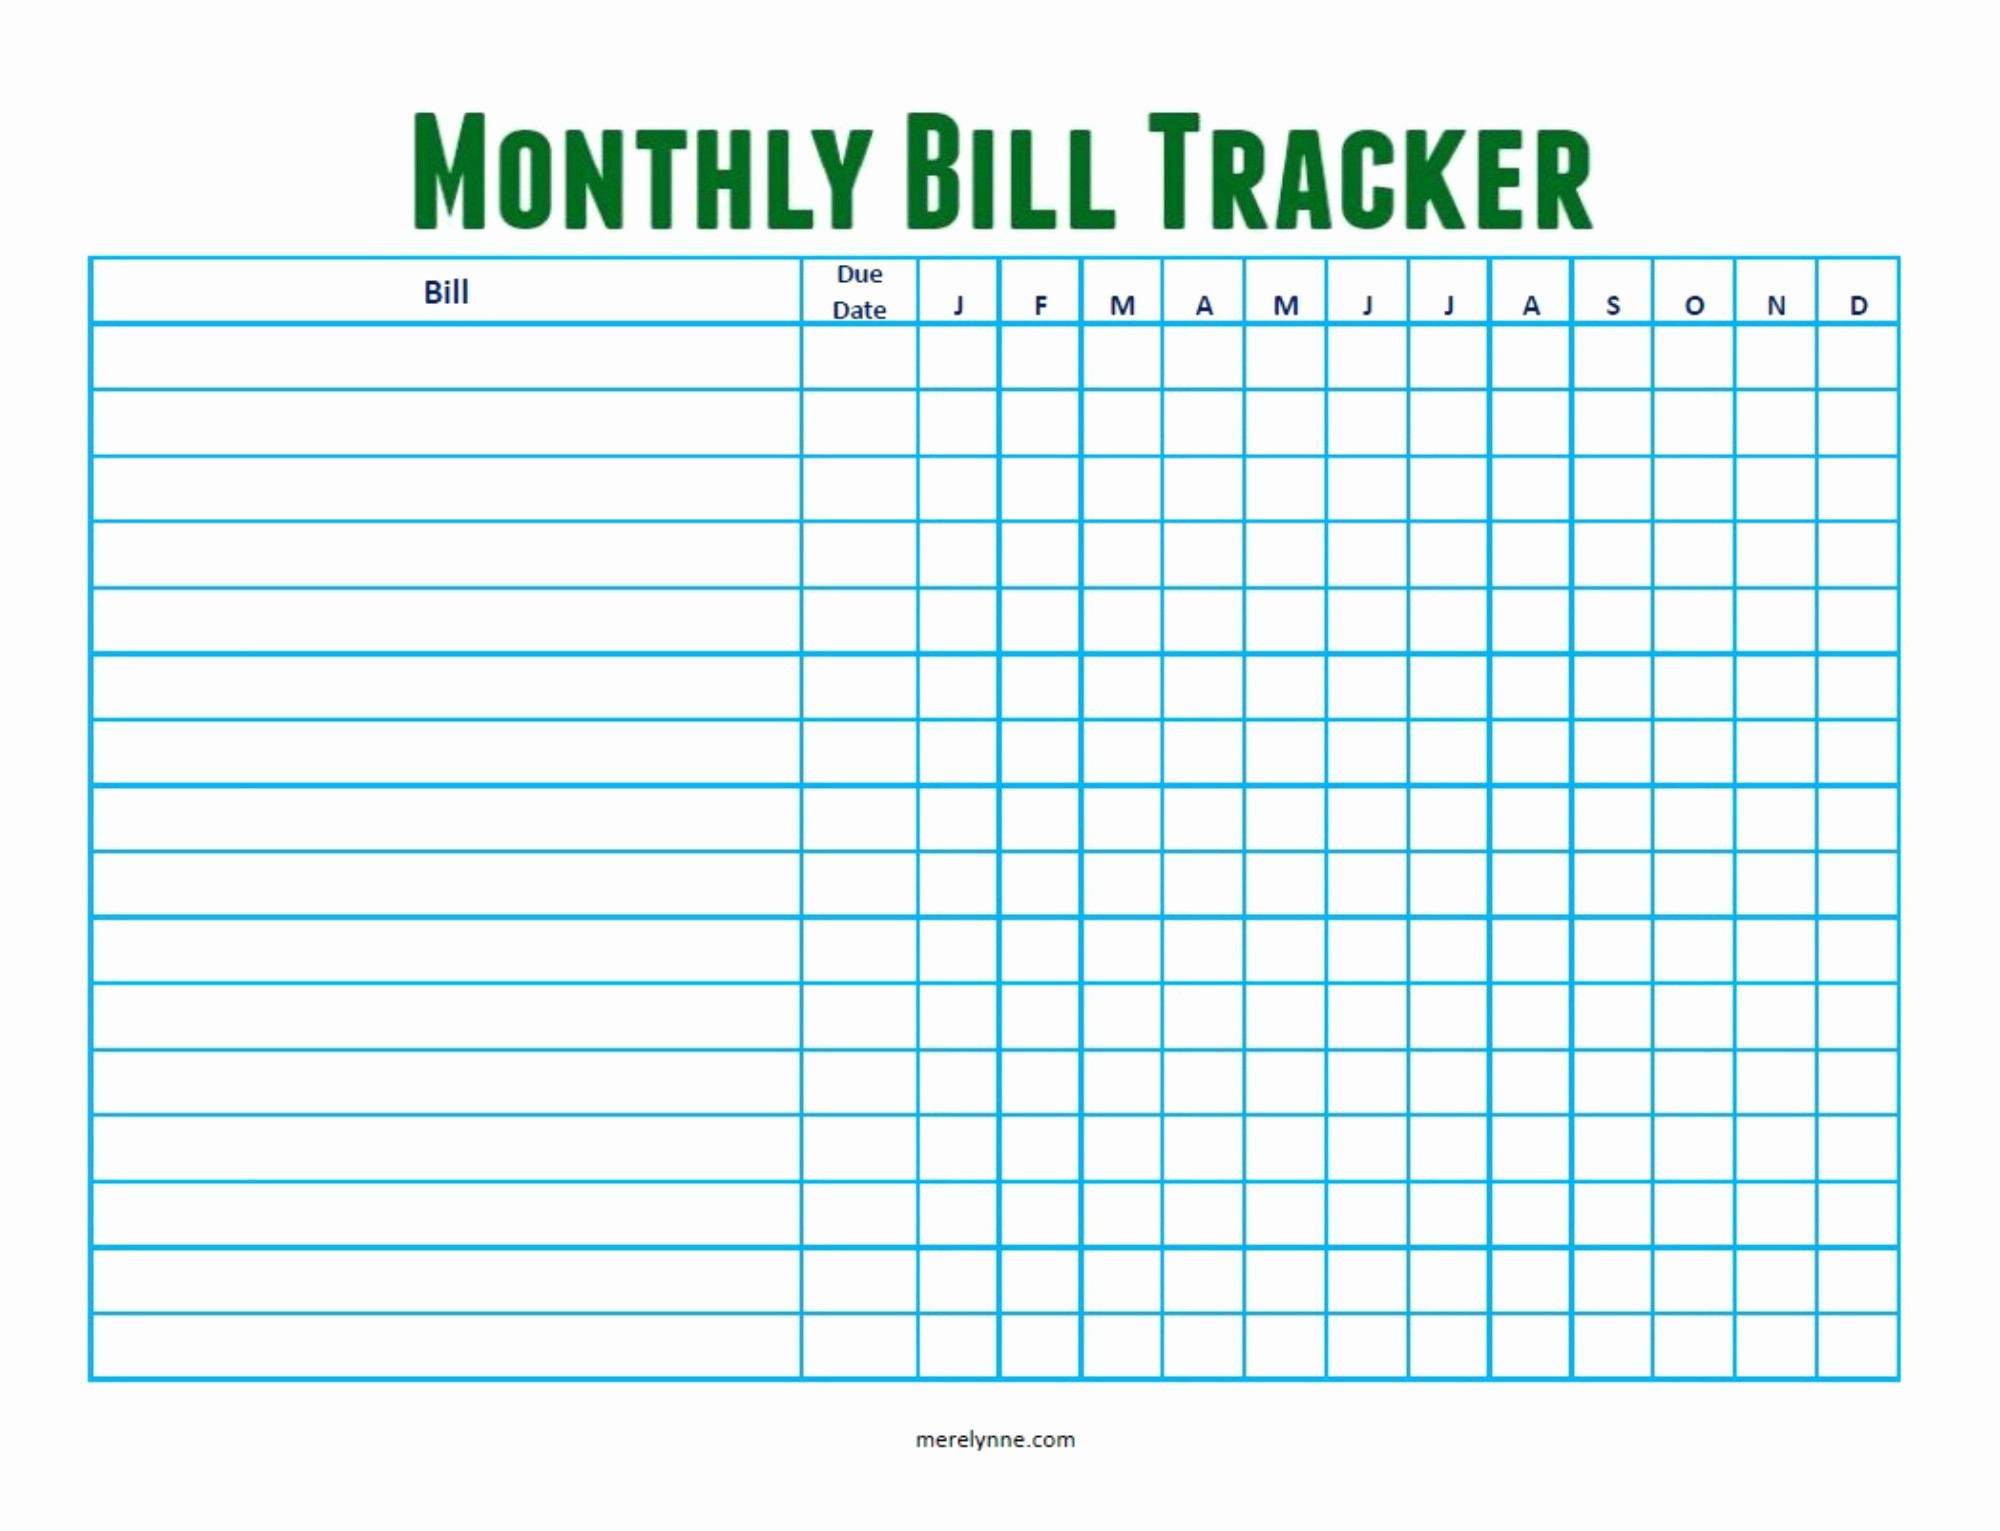 Monthly Bill Tracker Template Free Unique Monthly Bill Tracker From Merelynne Merelynne by